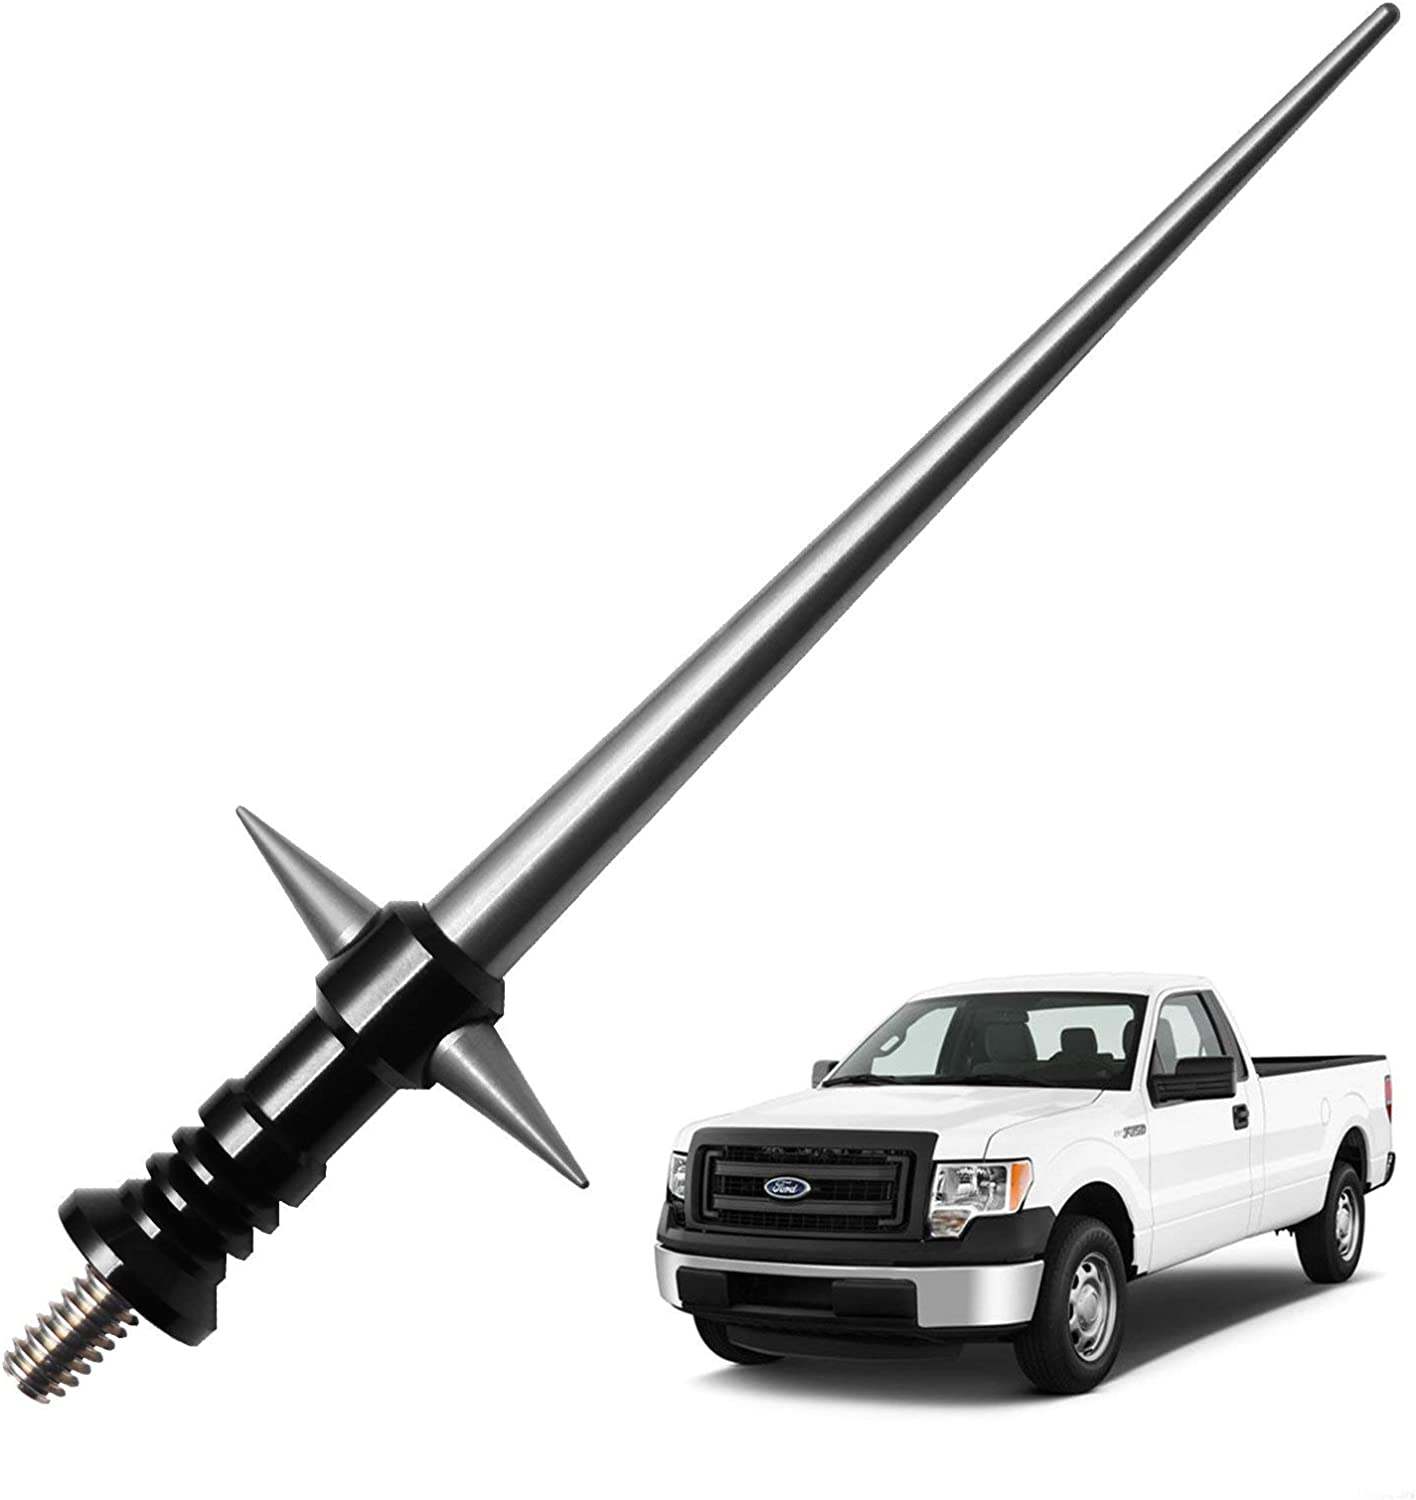 Black 5.25 inches JAPower Replacement Antenna Compatible with GMC Sierra//Yukon//Denali Trucks 2007-Current